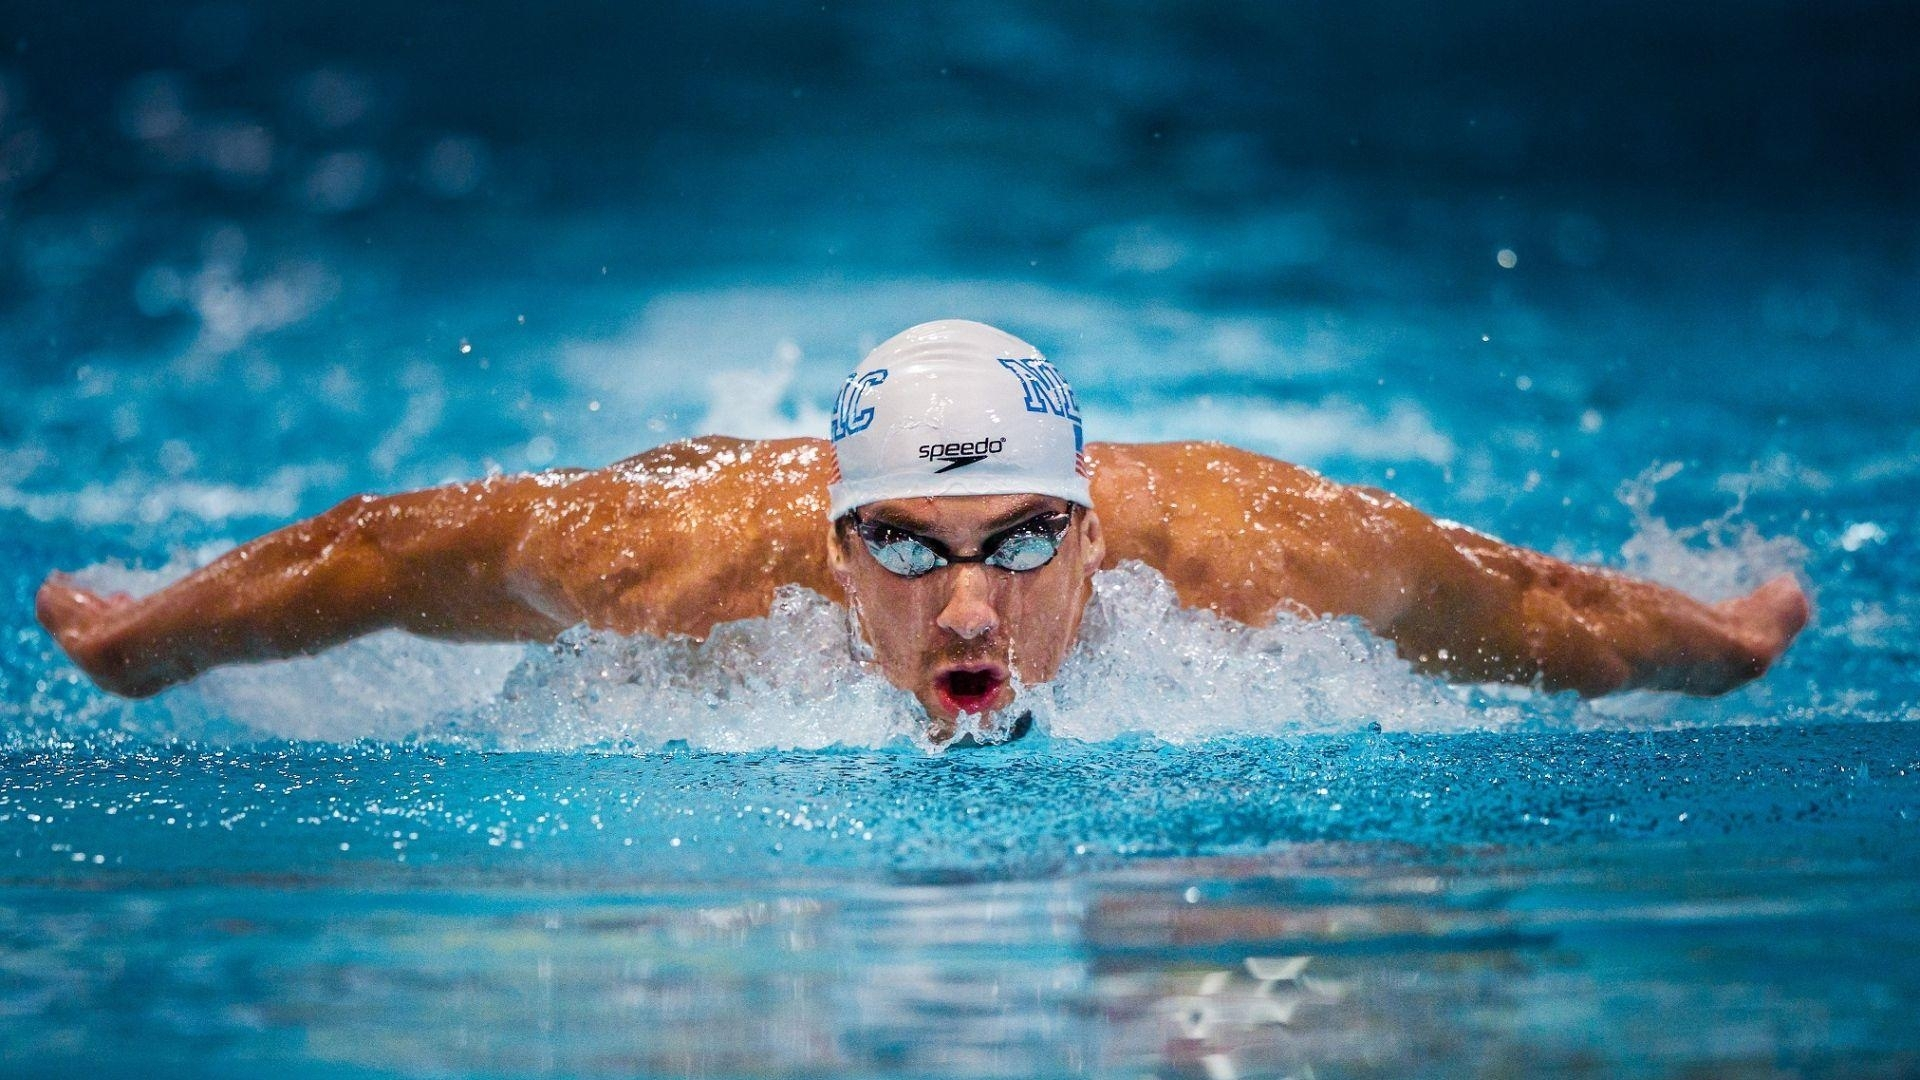 michael phelps wallpapers - wallpaper cave